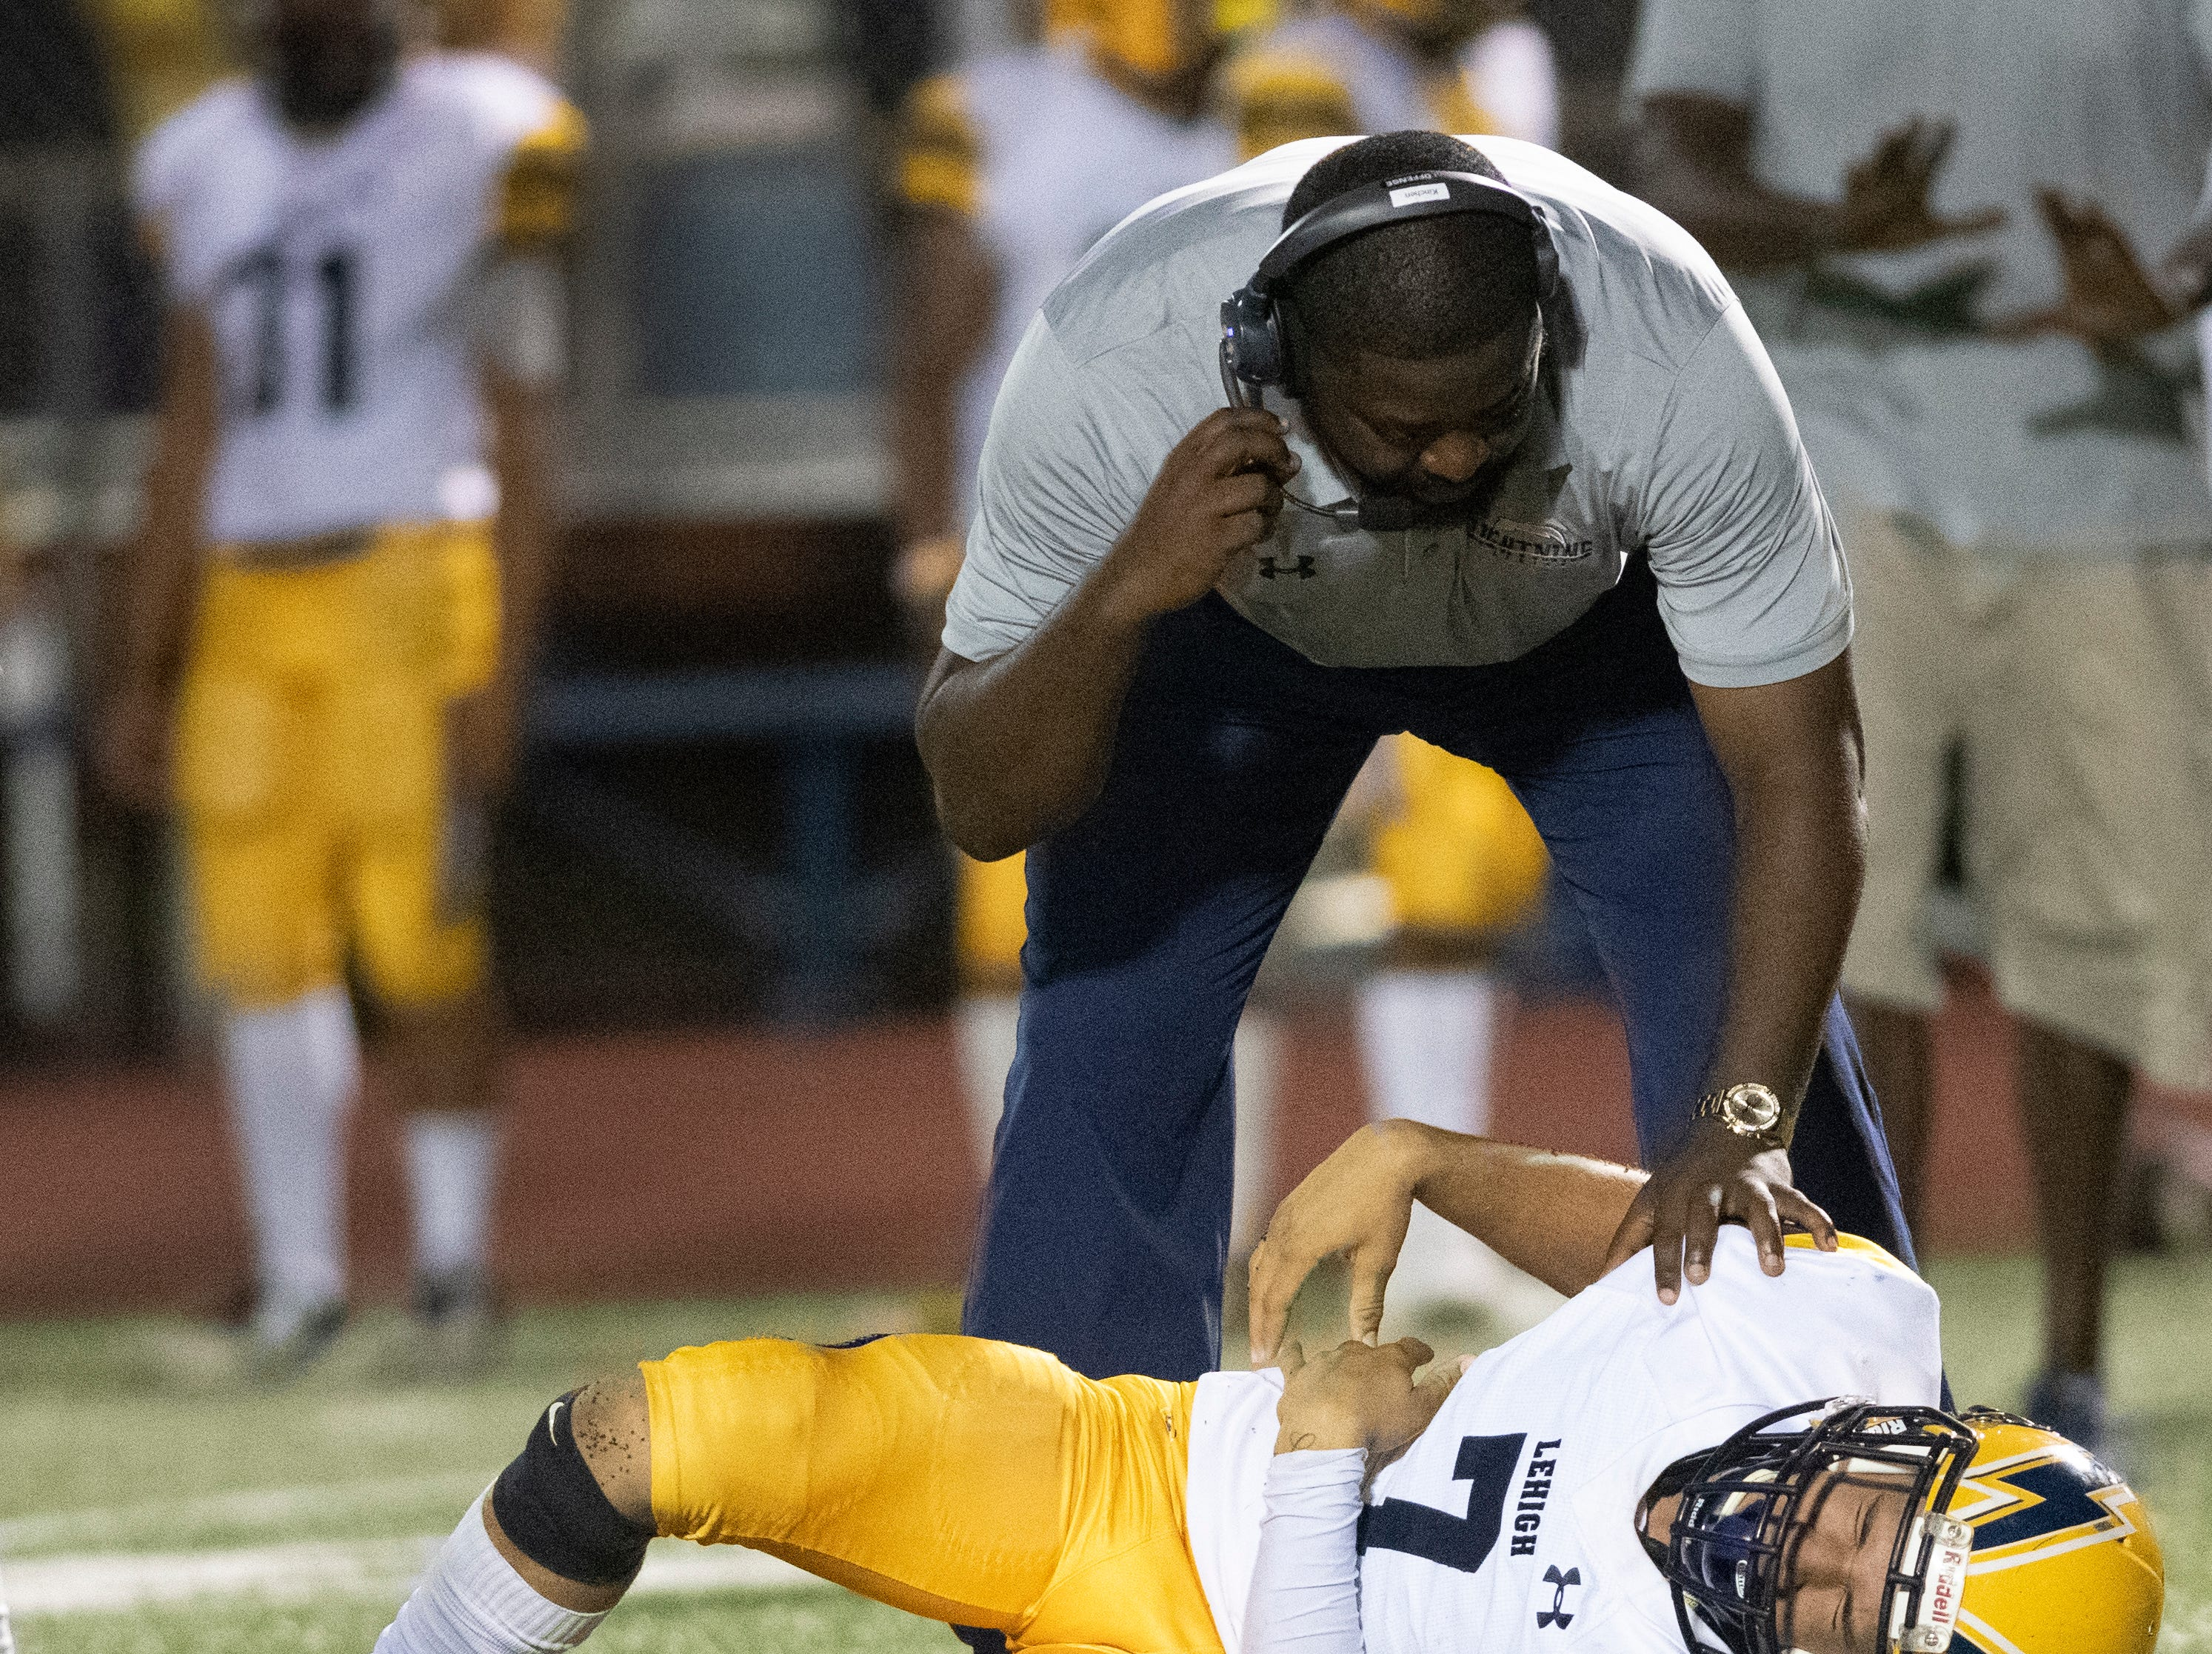 Lehigh quarterback D'Mateo Collins grimaces with pain after being hit by a Naples defender during the Class 6A regional quarterfinal playoff game at Naples High on Friday night, November 9, 2018.